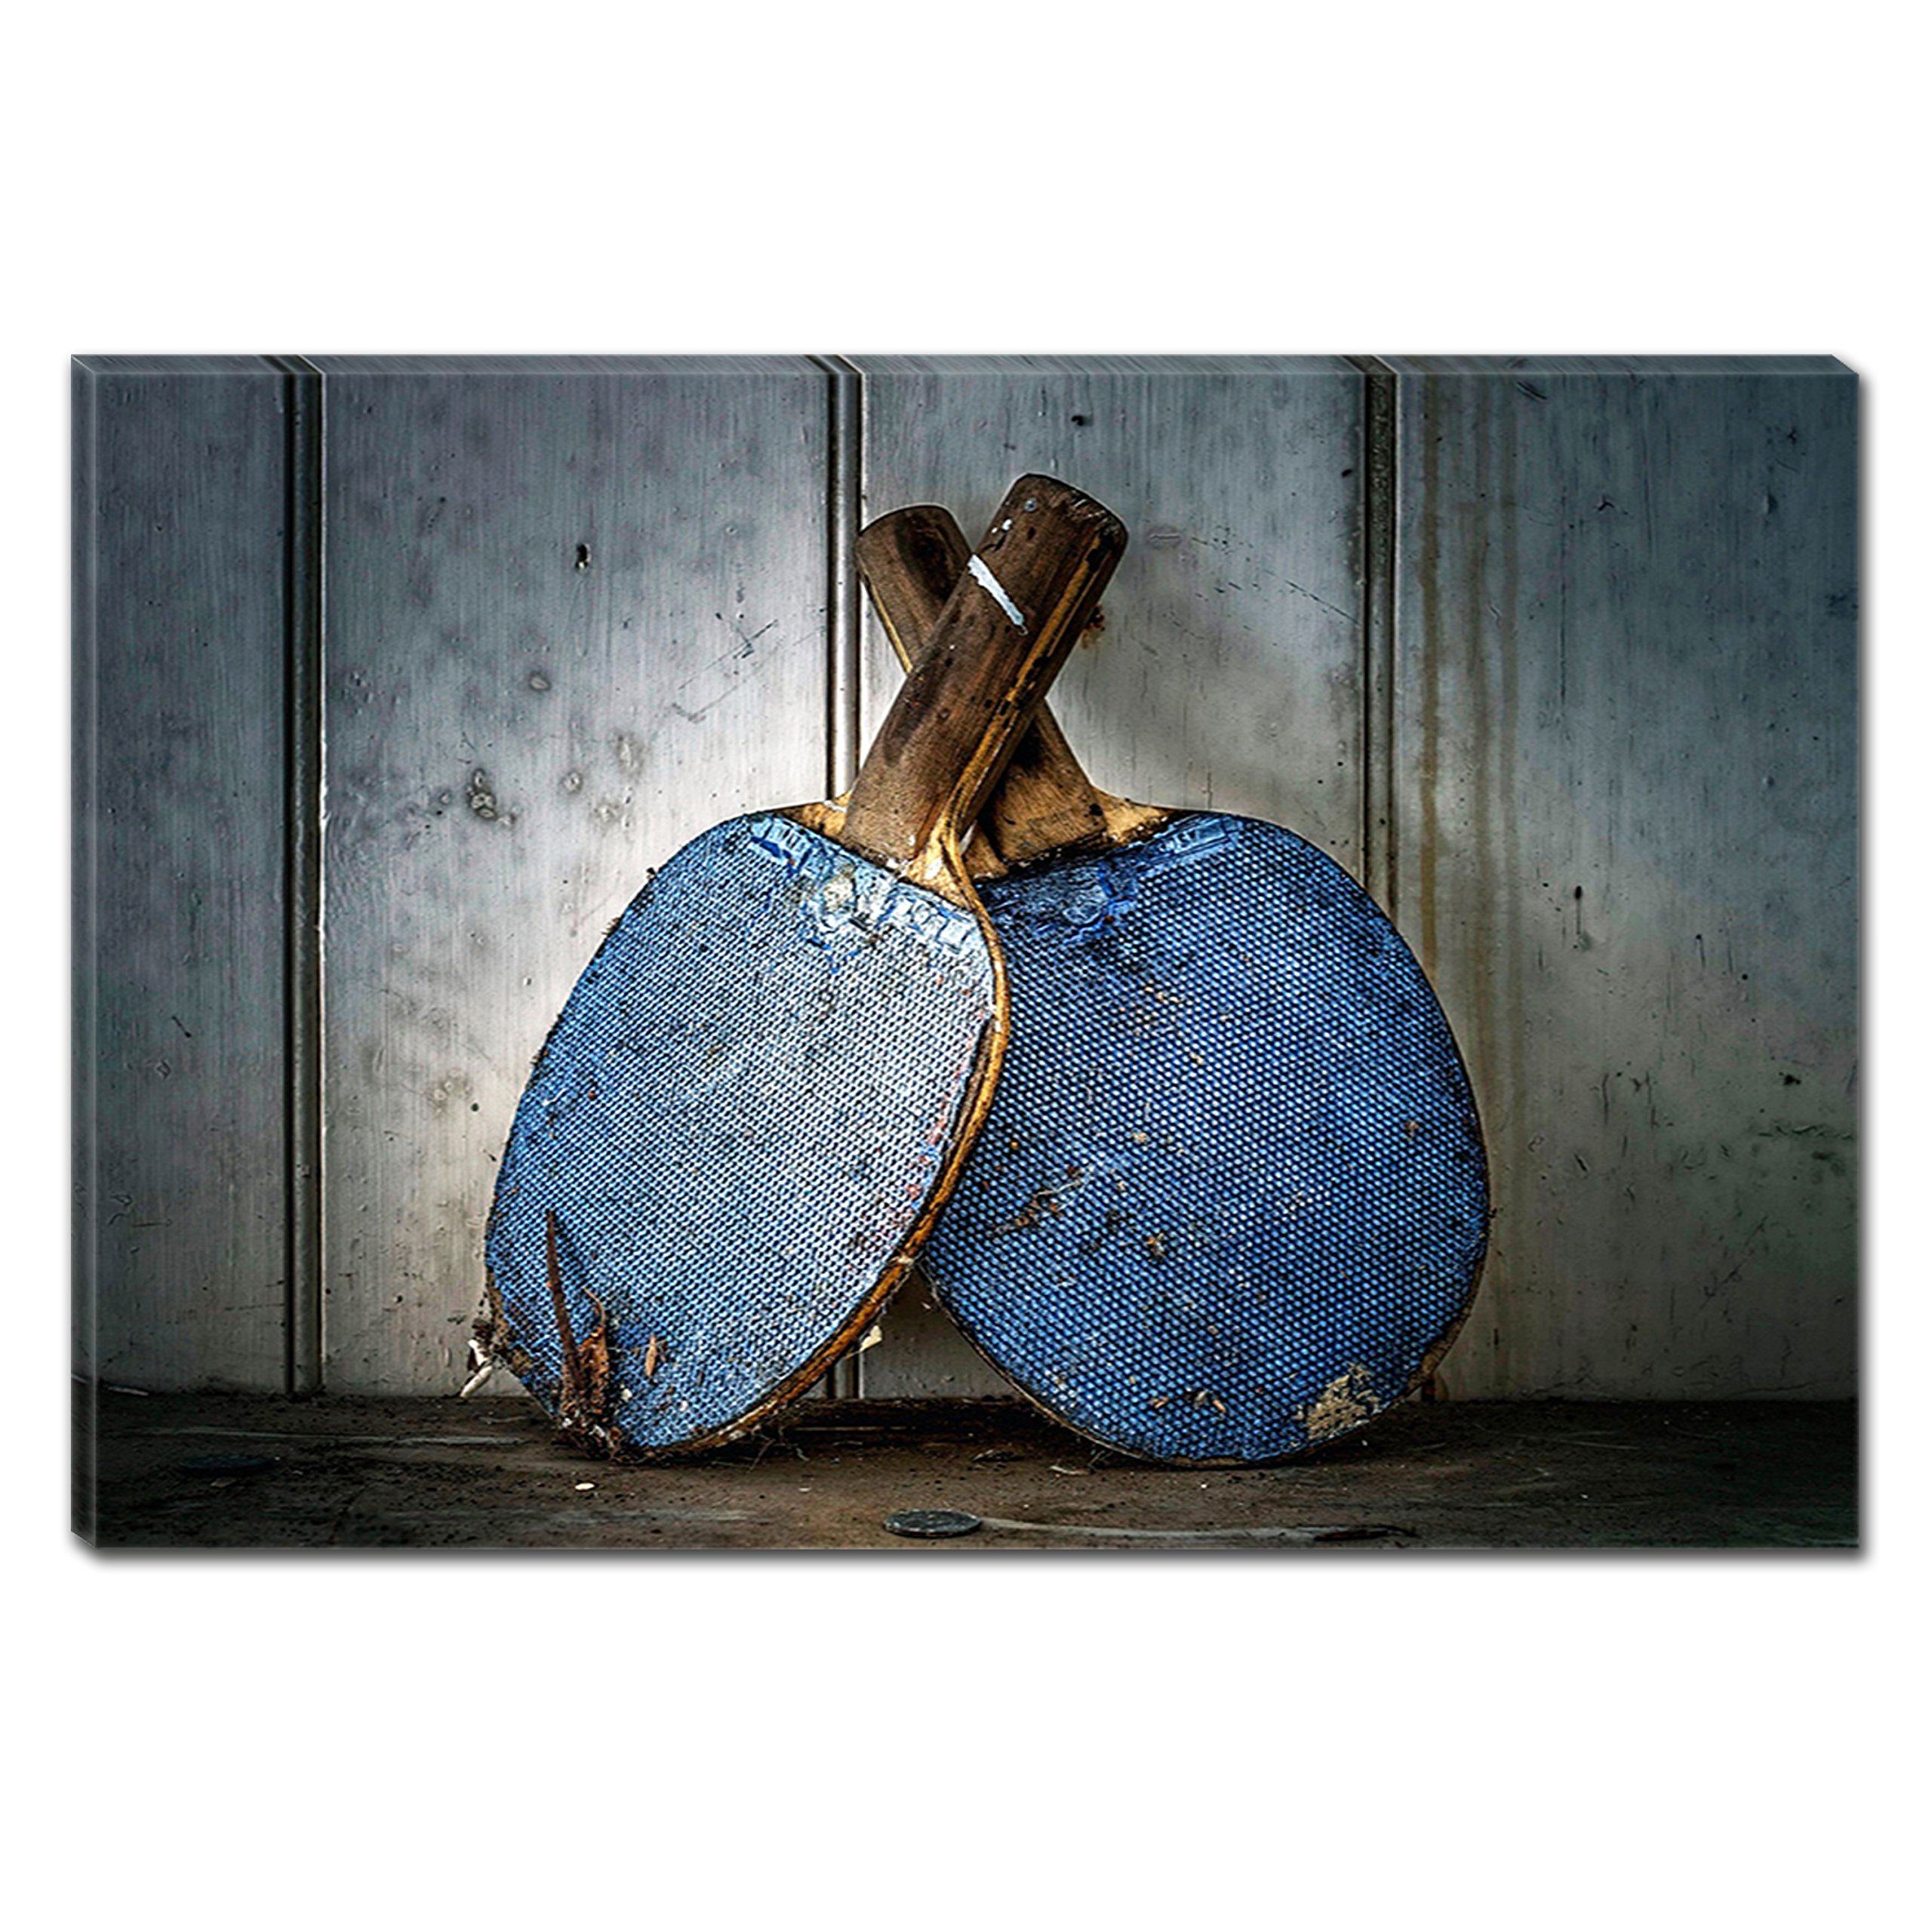 Startonight Canvas Wall Art Blue Ping Pong Paddle, Dual View Surprise Artwork Modern Framed Ready to Hang Wall Art 100% Original Art Painting 31.5 x 47.2 inch